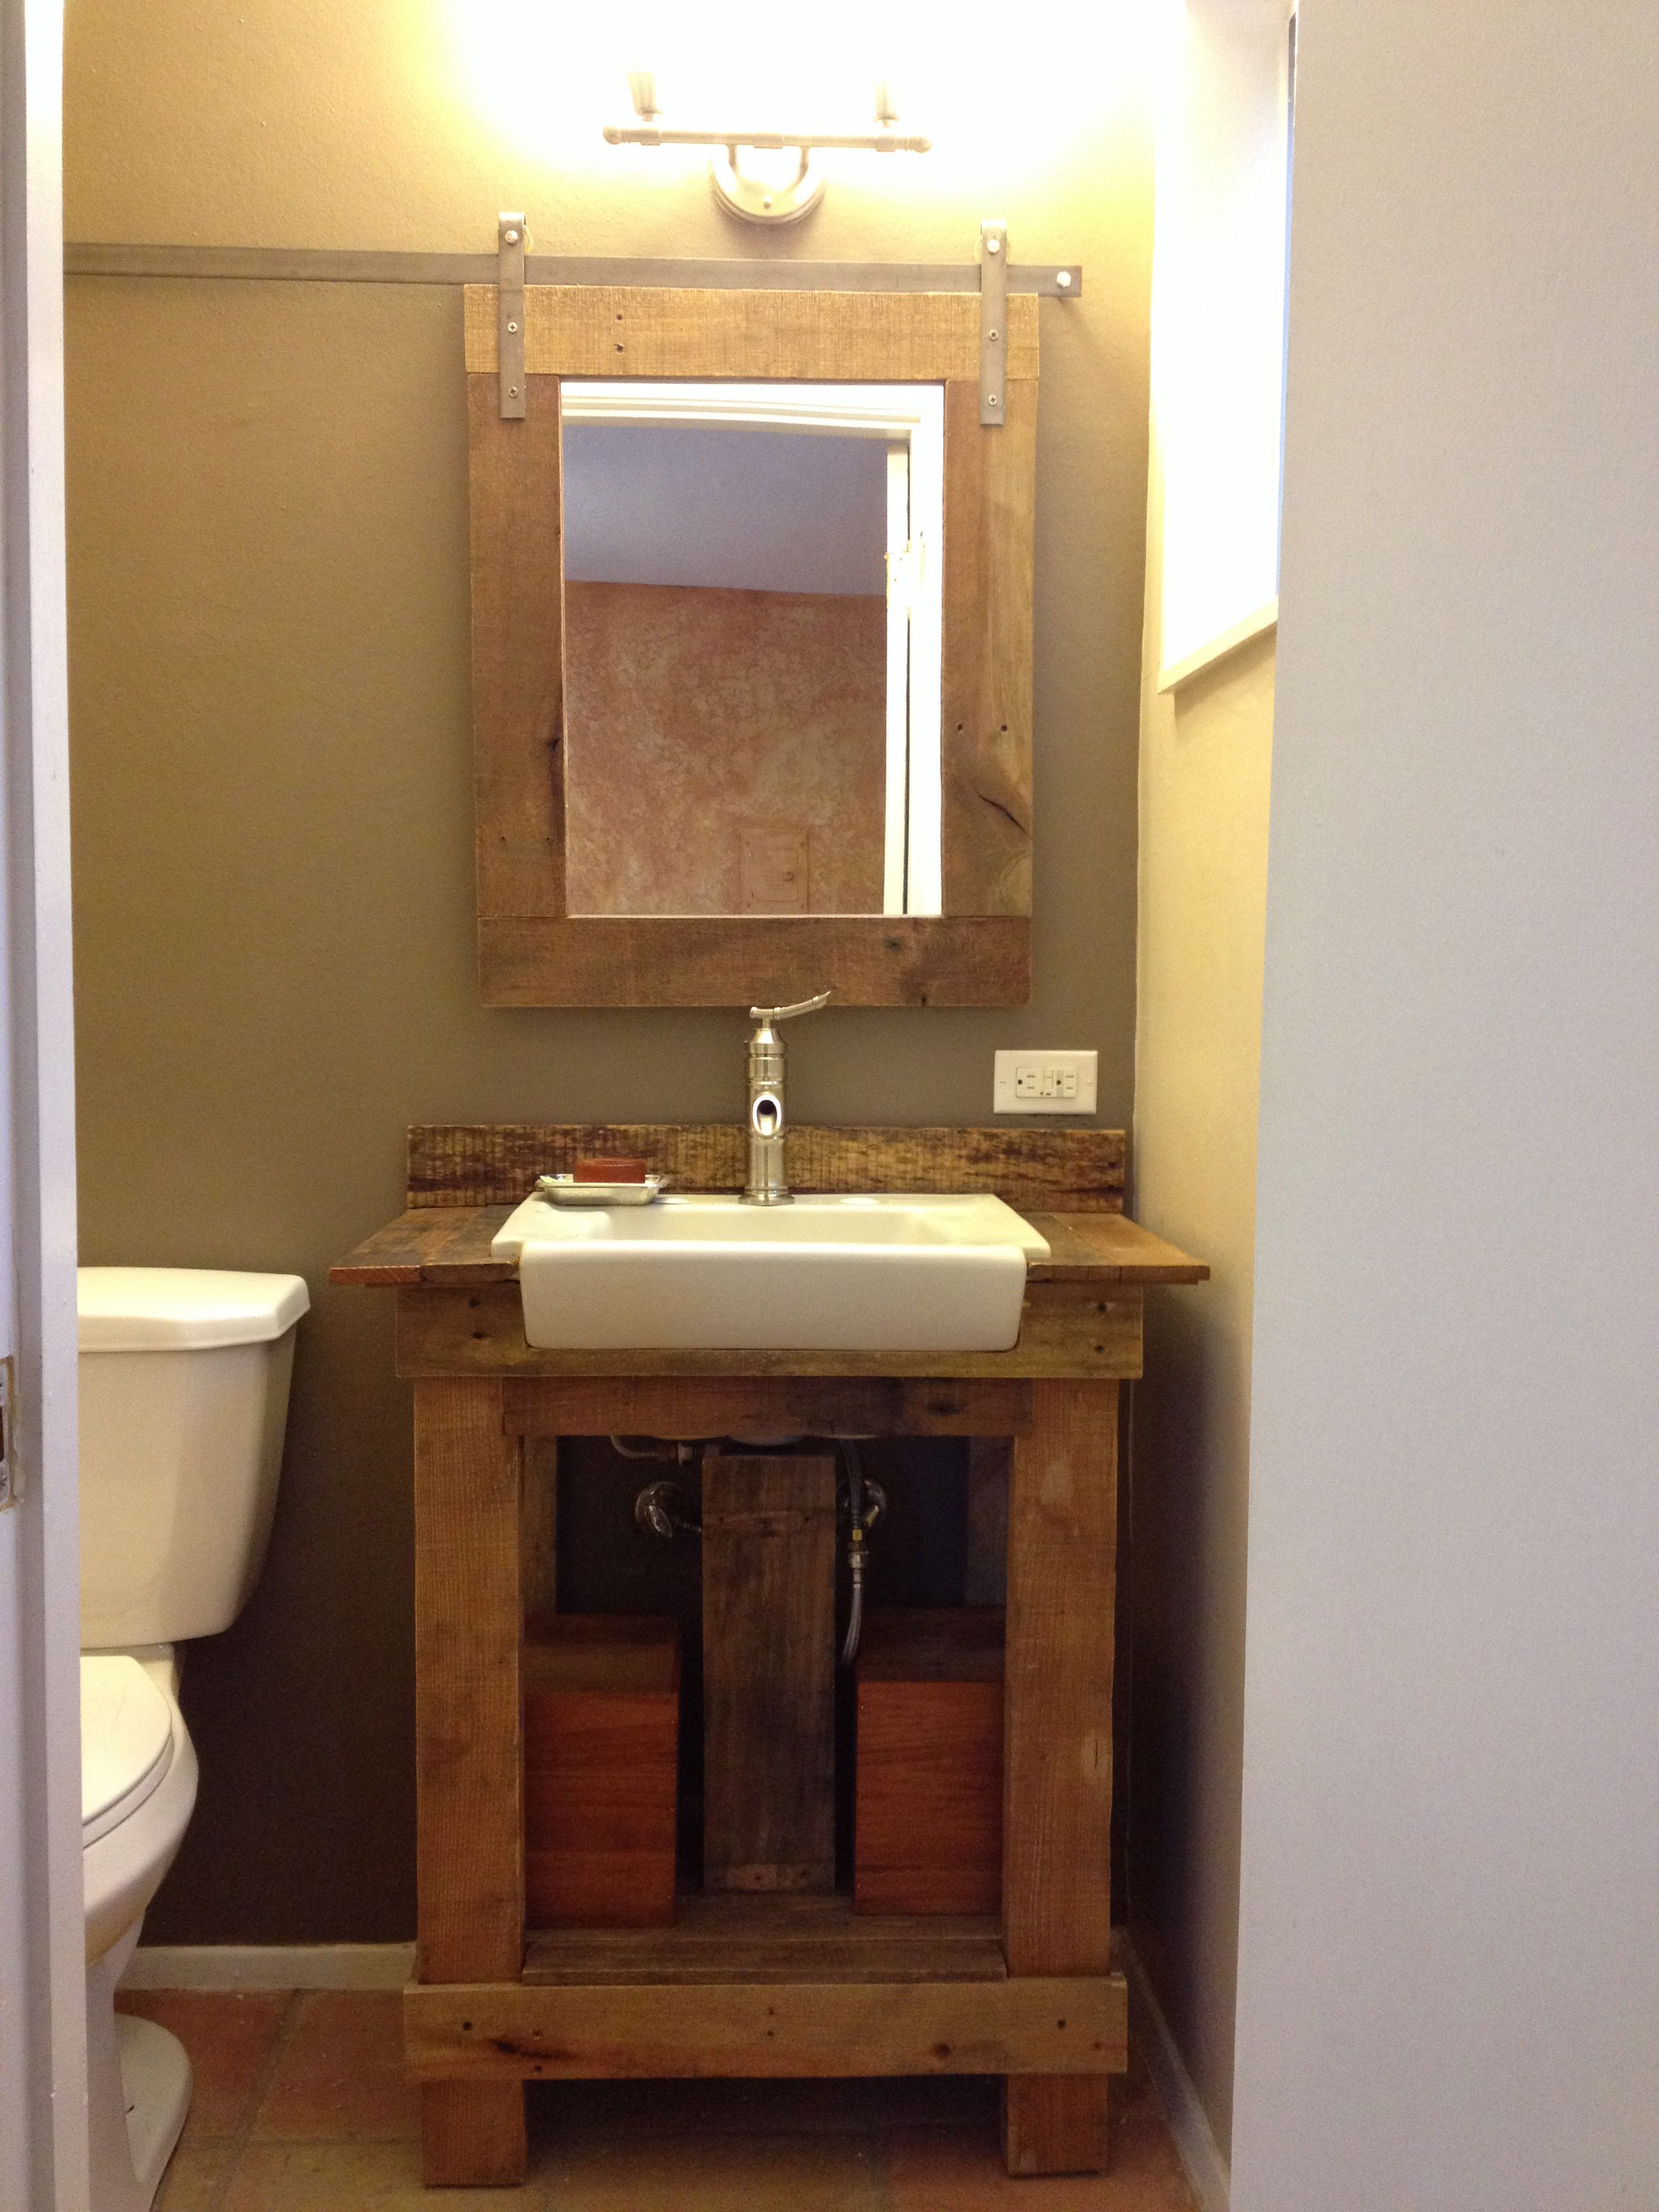 5 00 Sink From Restore And Vanity Made From Free Pallet Wood